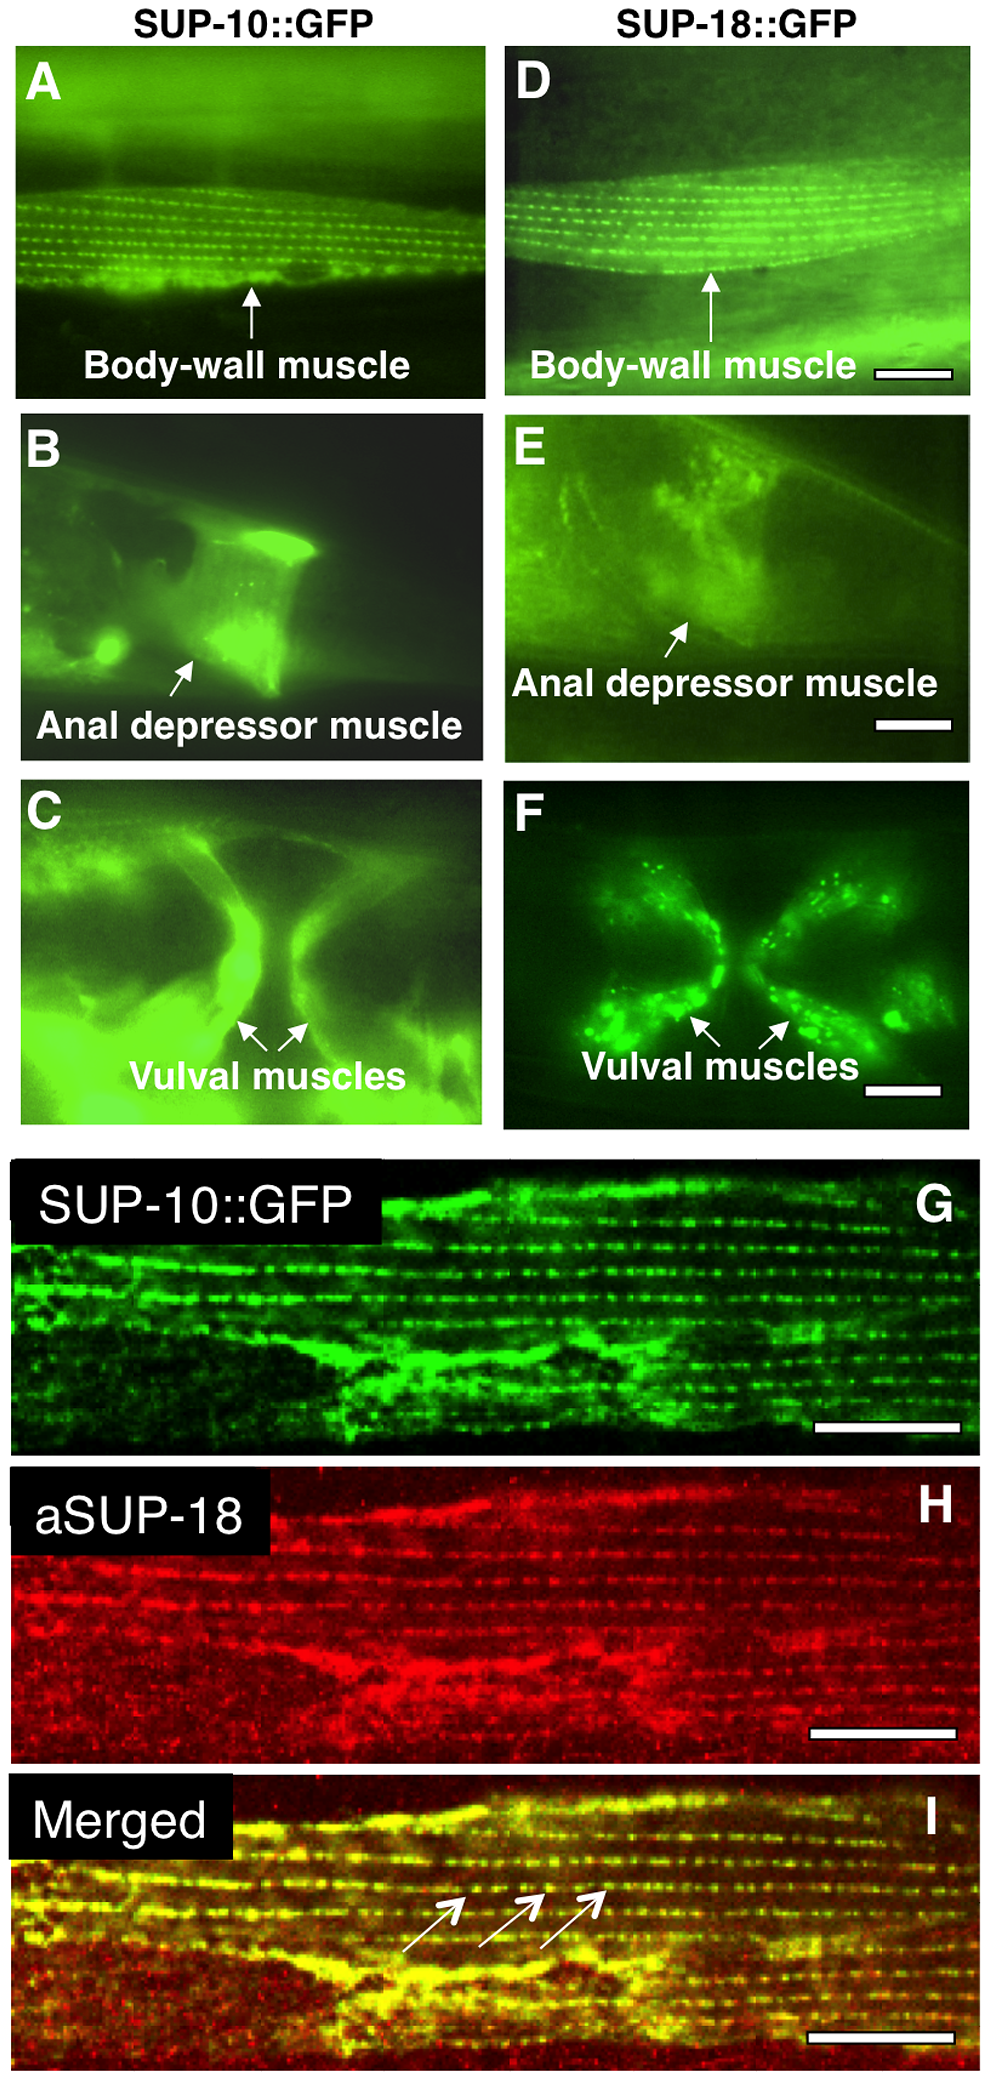 SUP-18 is expressed predominantly in muscles and co-localizes subcellularly with SUP-10.